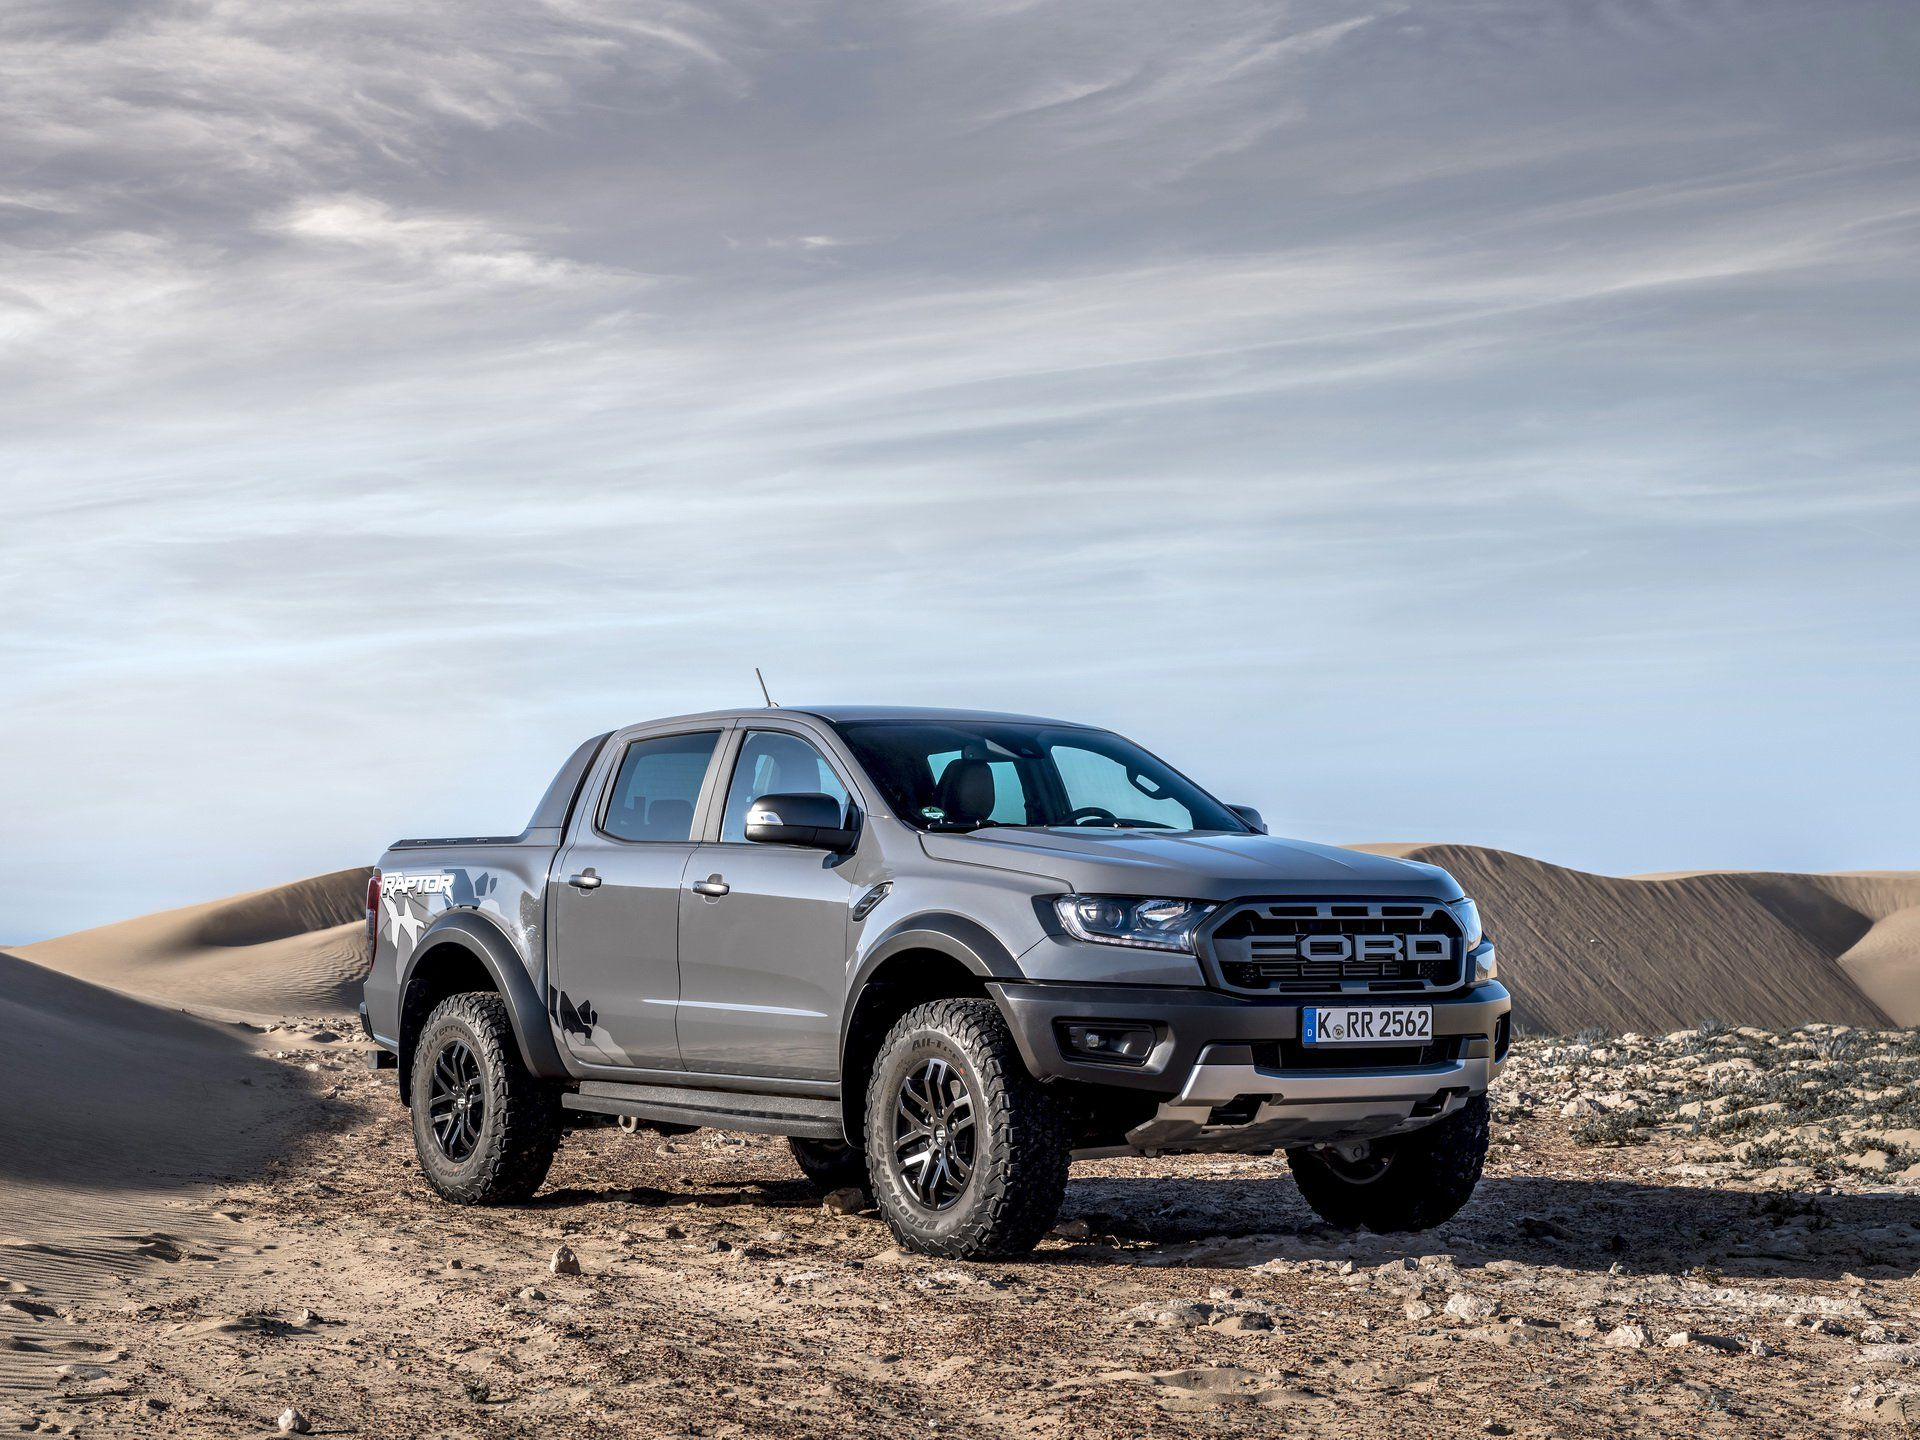 Explore The 2019 Ford Ranger Raptor In 114 Images And See What You Re Missing In The U S Carscoops Ford Ranger Raptor 2019 Ford Ranger Ford Ranger